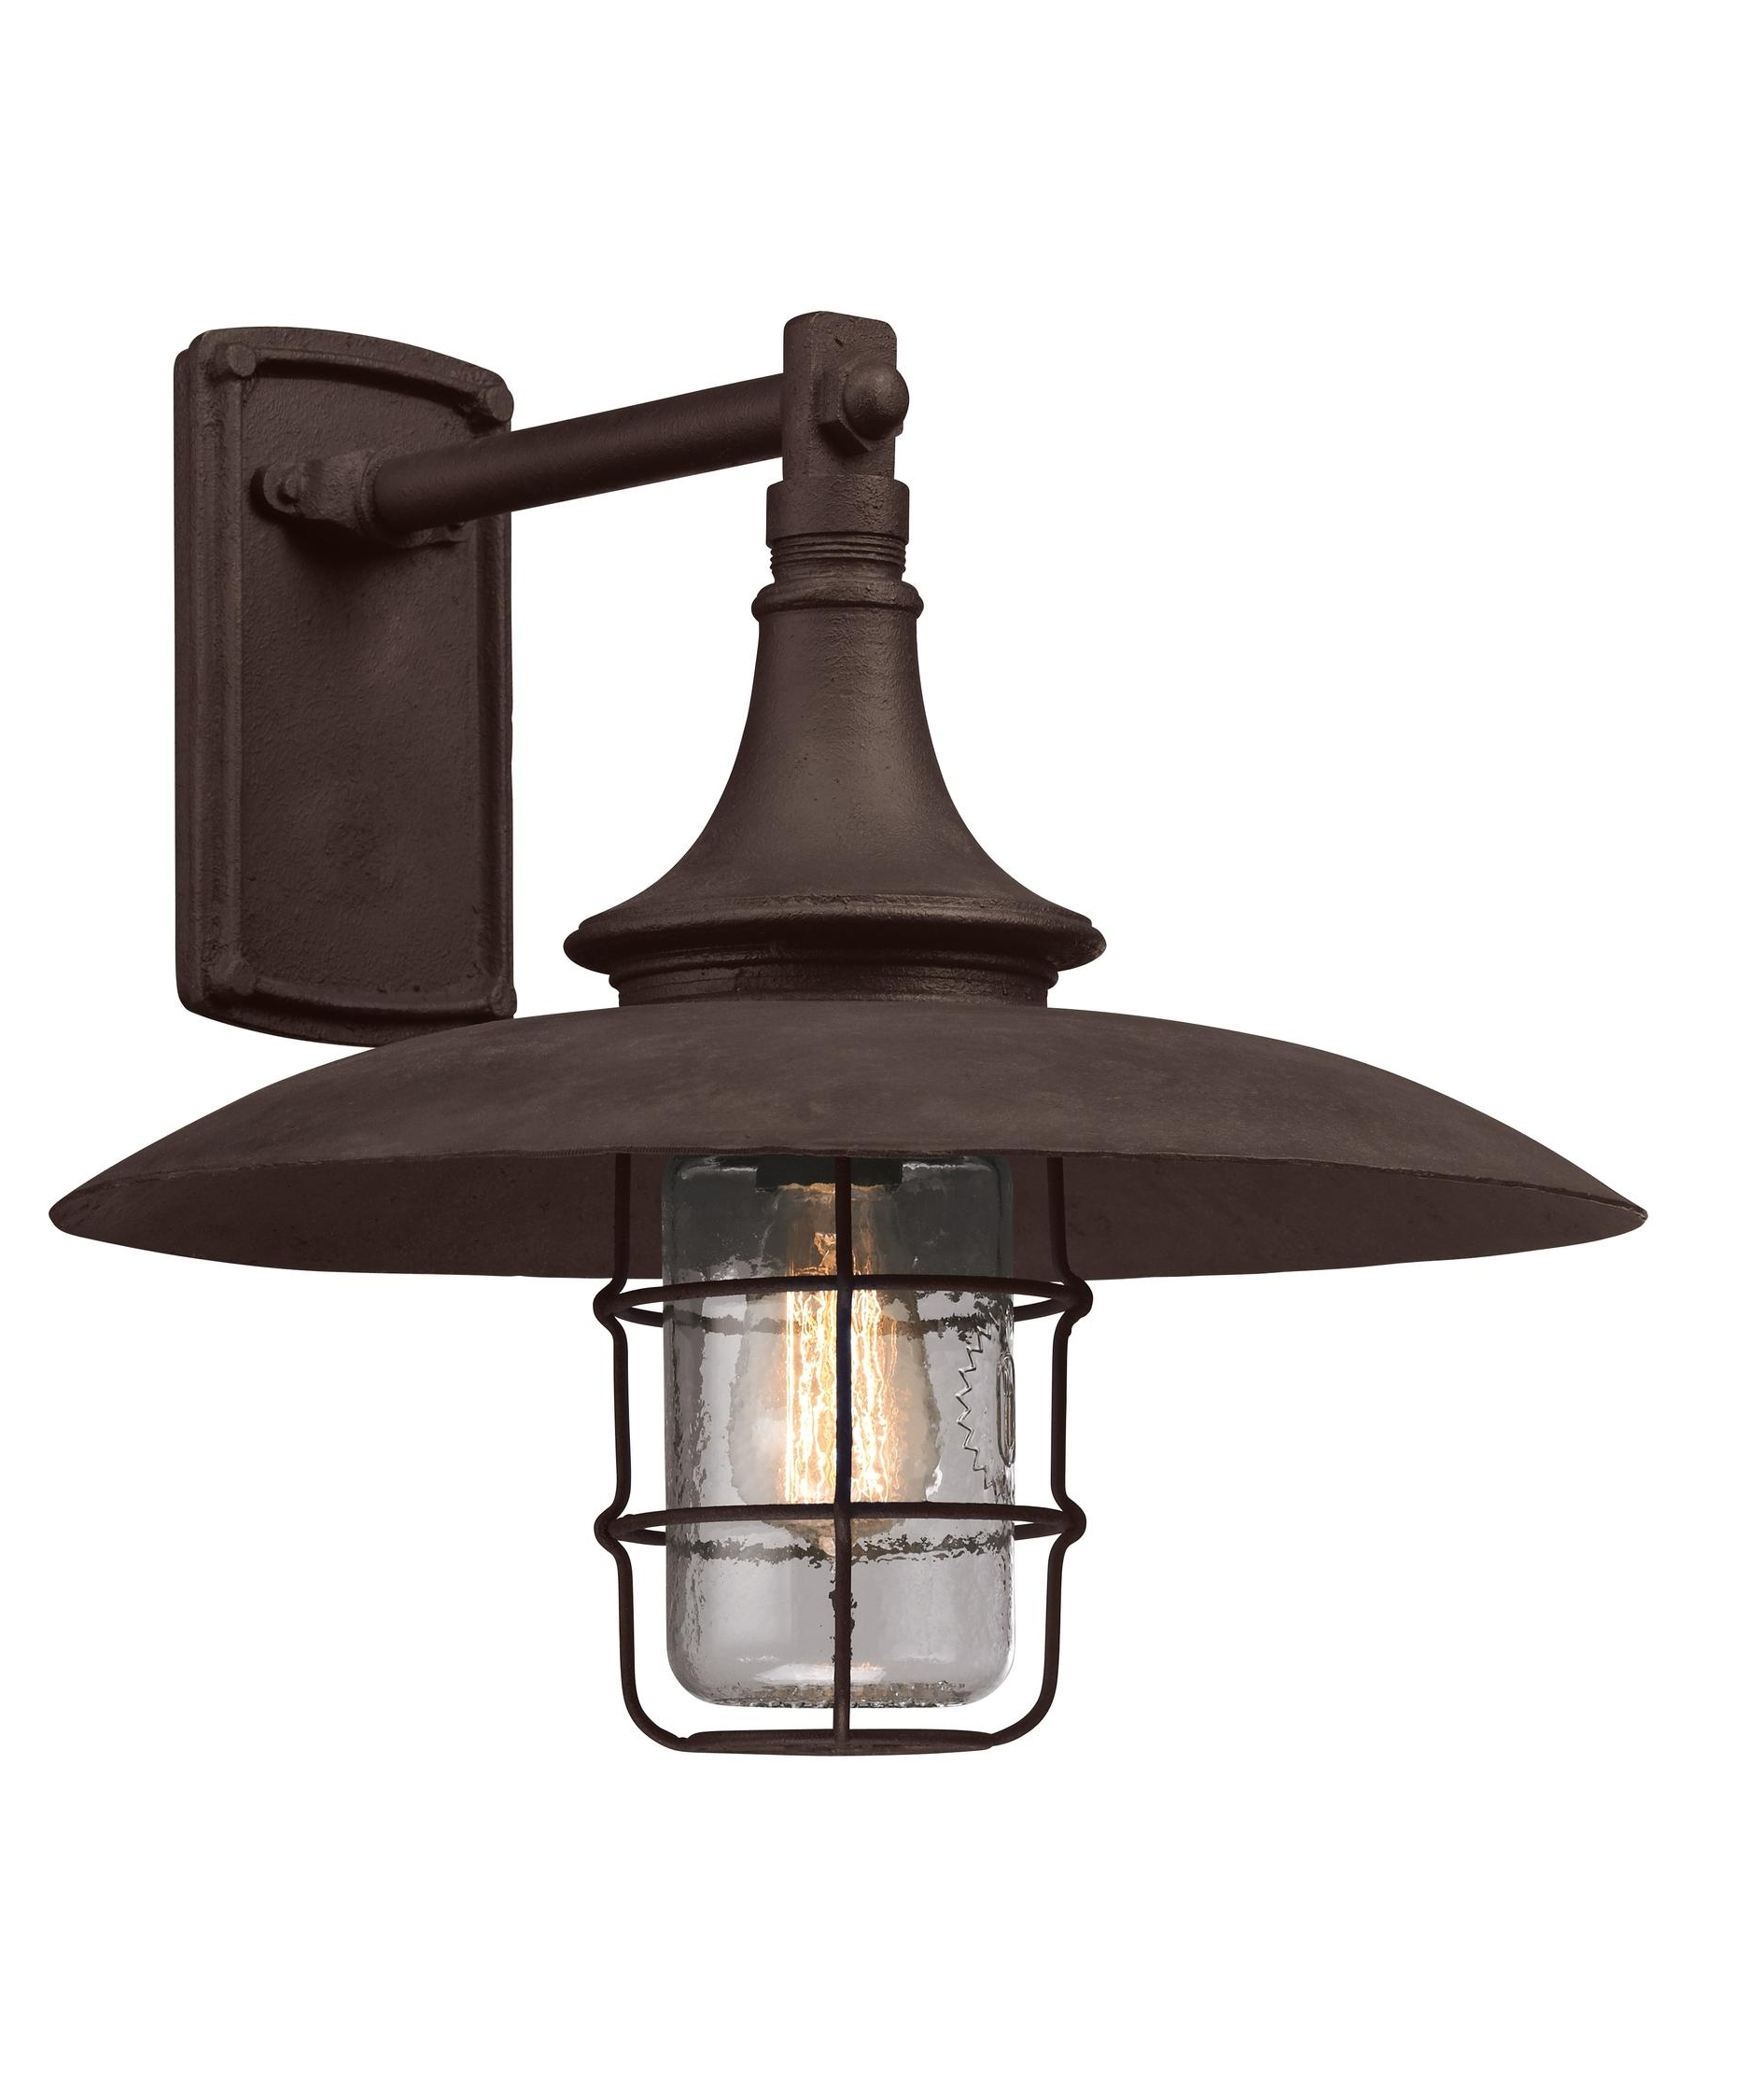 Troy Lighting B3222 Allegany 16 Inch Wide 1 Light Outdoor Wall Light Within Current Arts And Crafts Outdoor Wall Lighting (View 18 of 20)